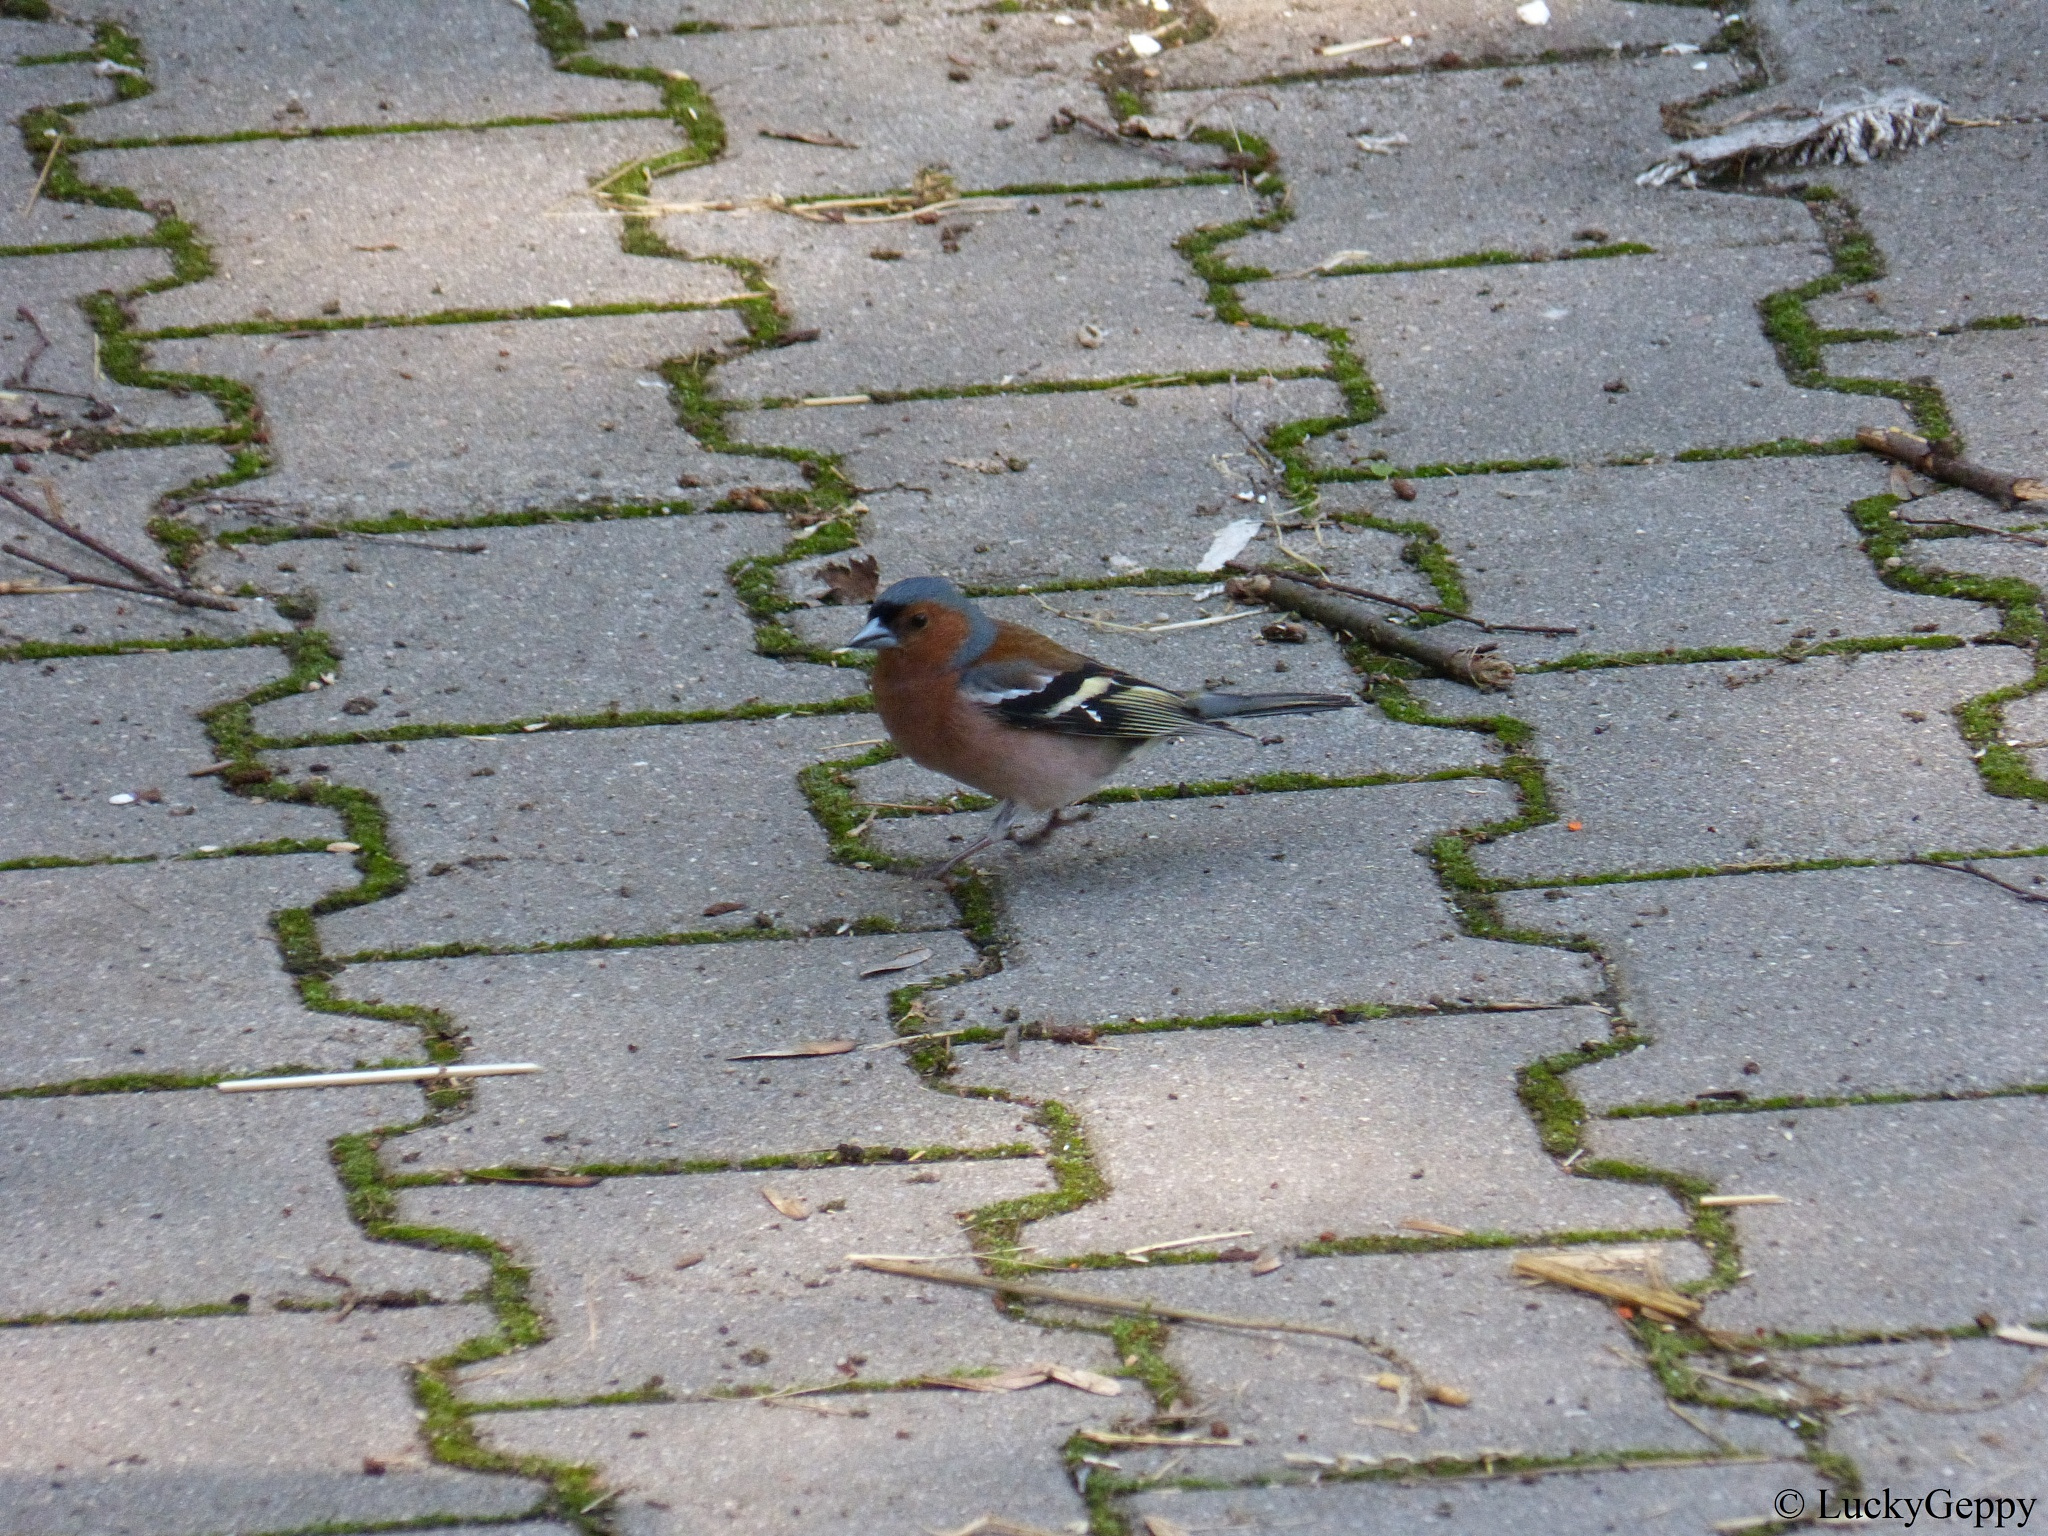 chaffinch by LuckyGeppy